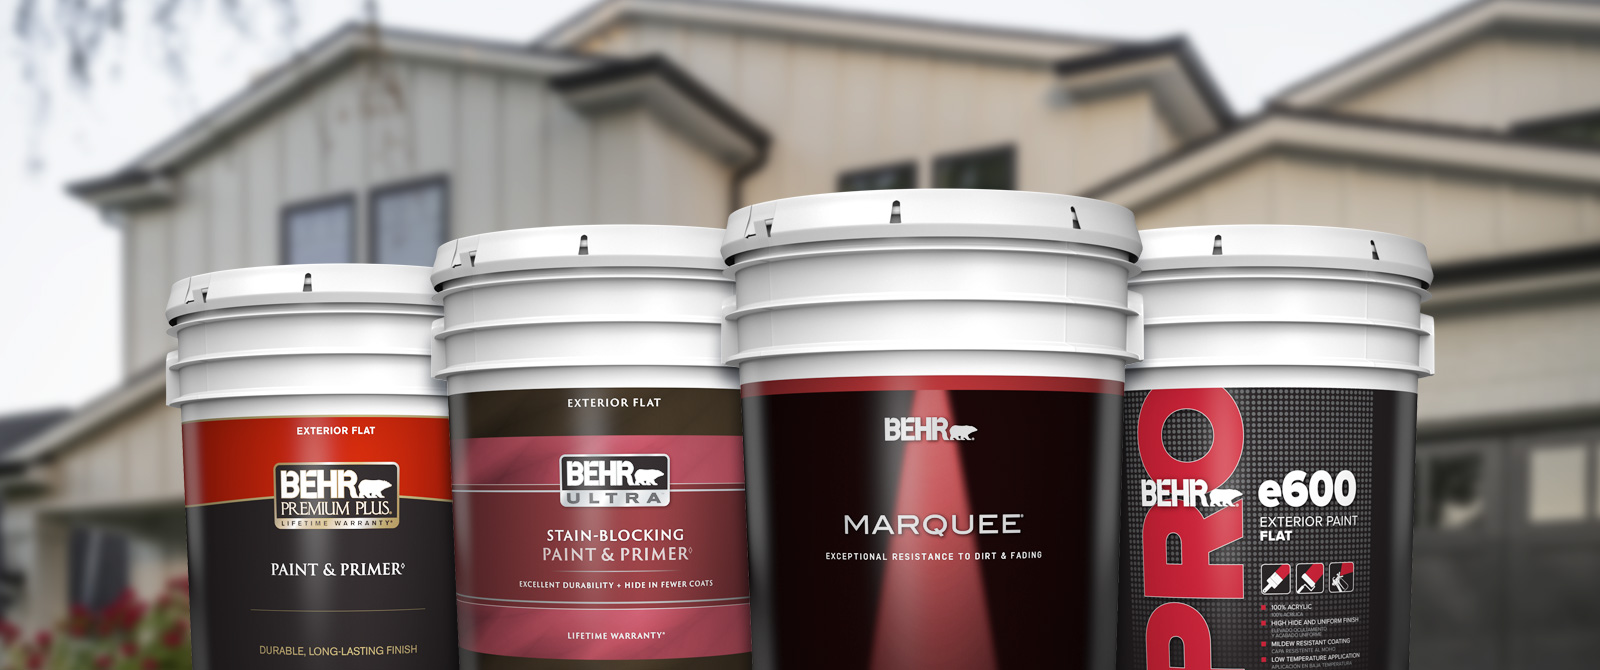 Behr Pro exterior products landing page desktop image featuring 5 gallon cans.